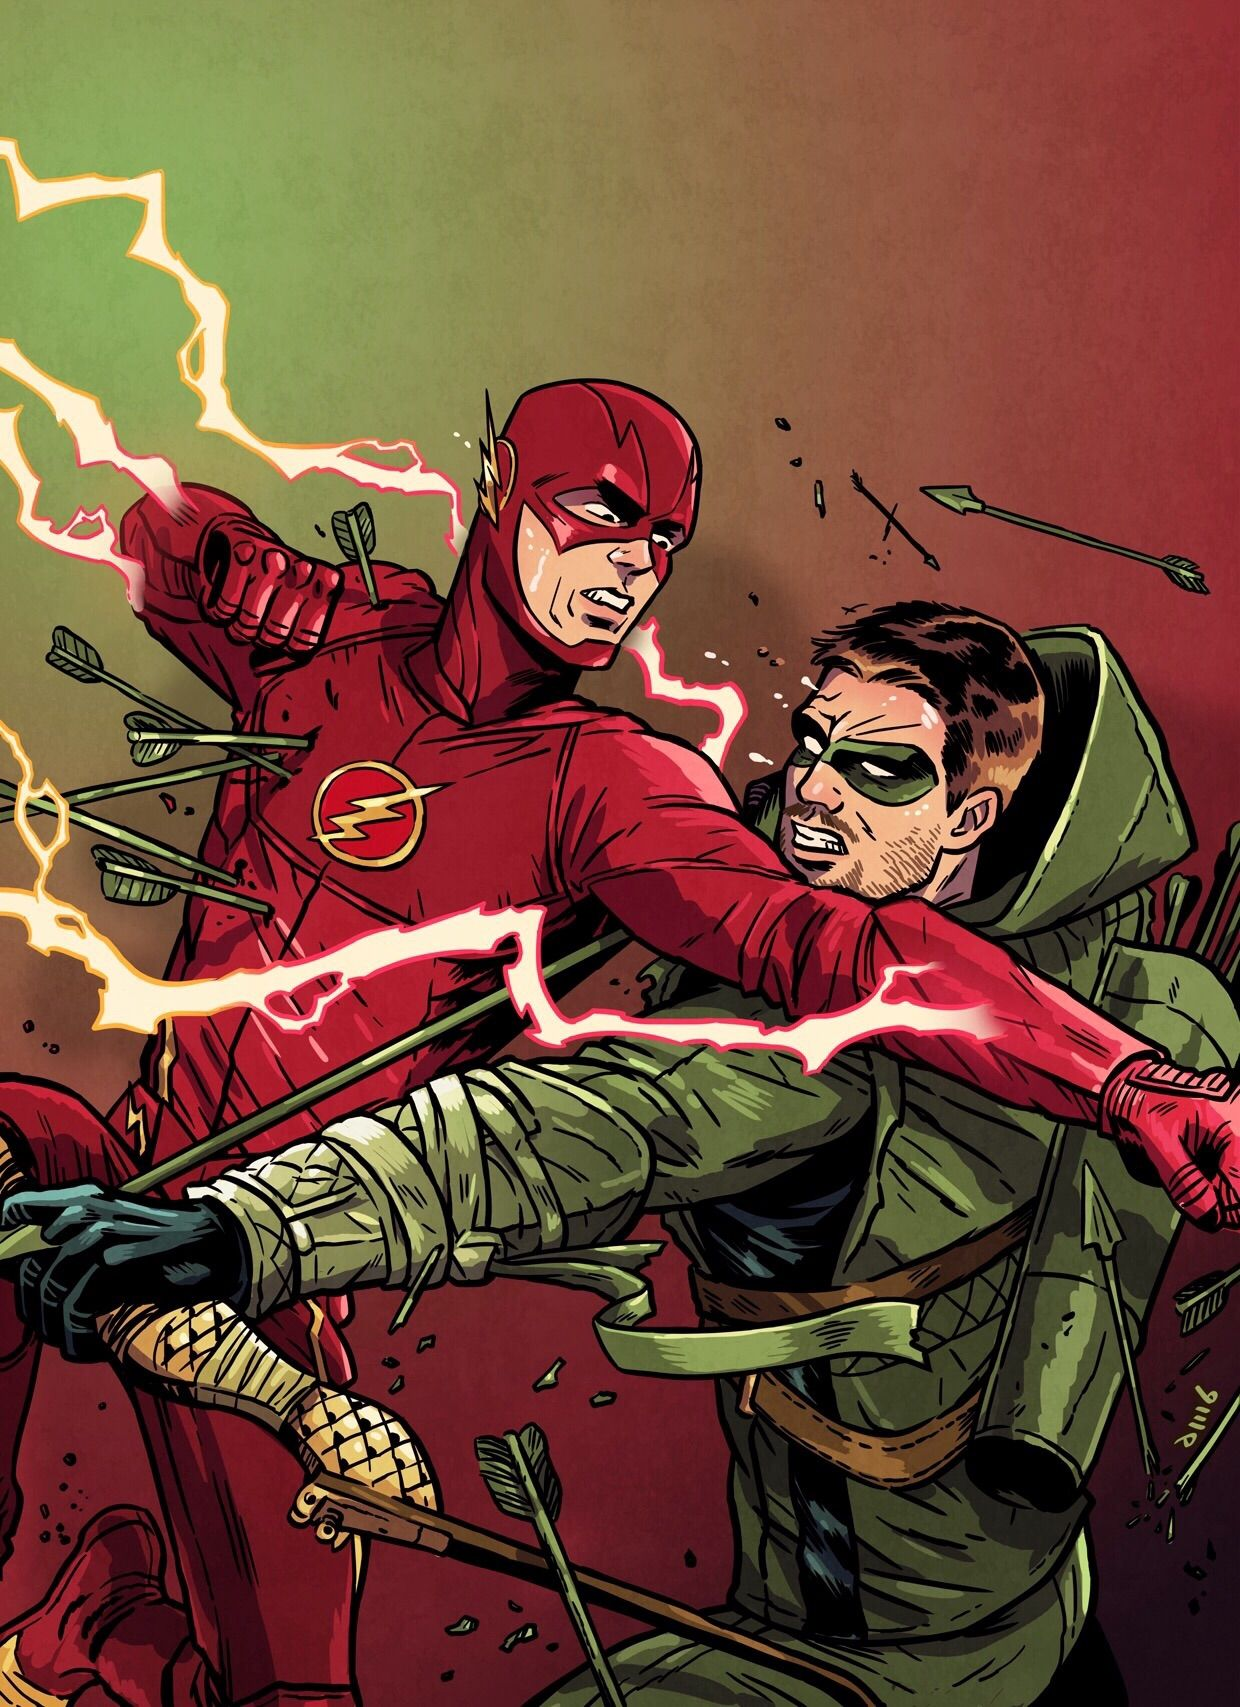 Dc Comics Fans : The flash vs arrow art by david m buisán cosplay life